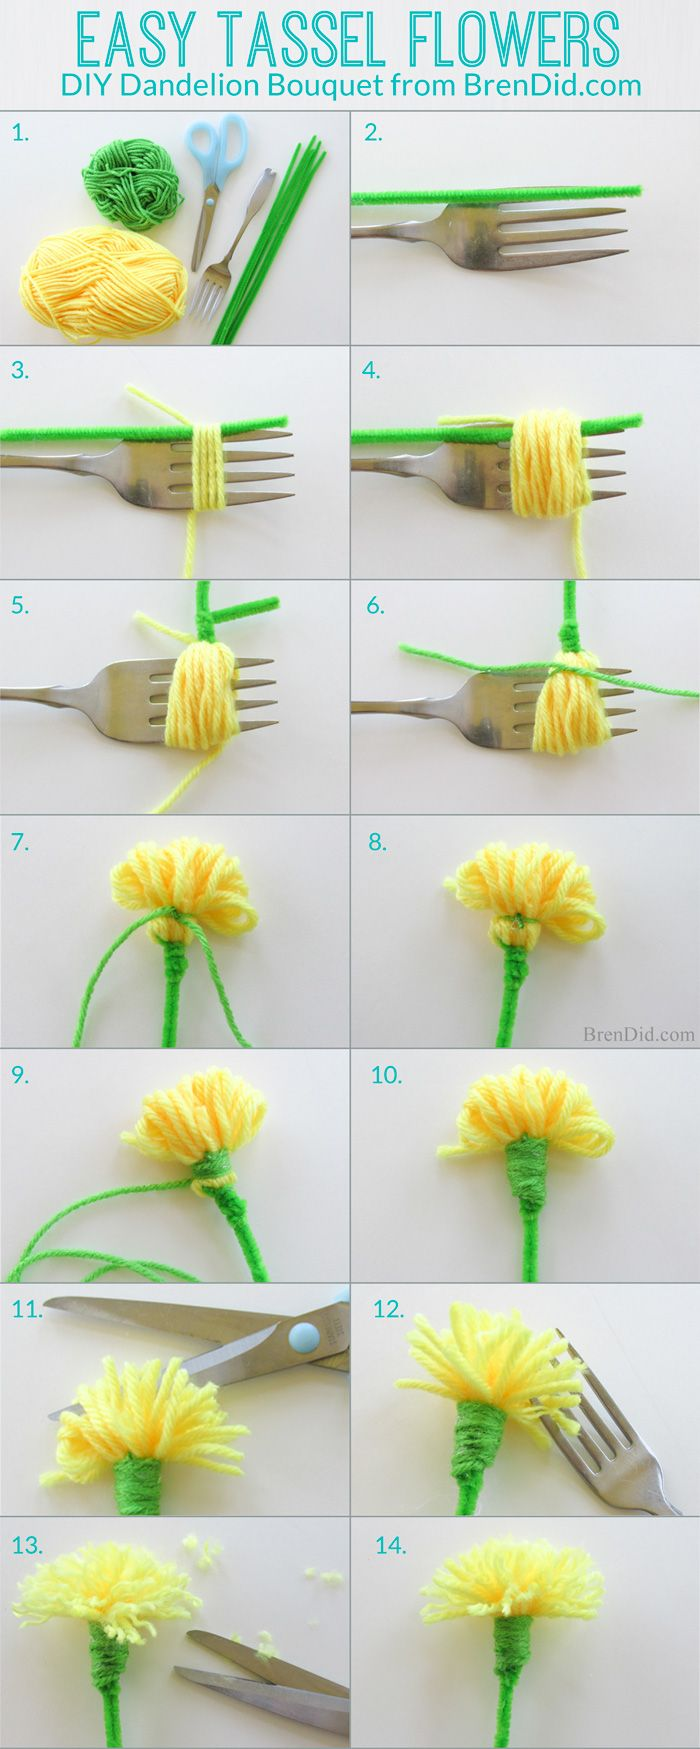 Make adorable yarn bouquets for any summer festivity :-)